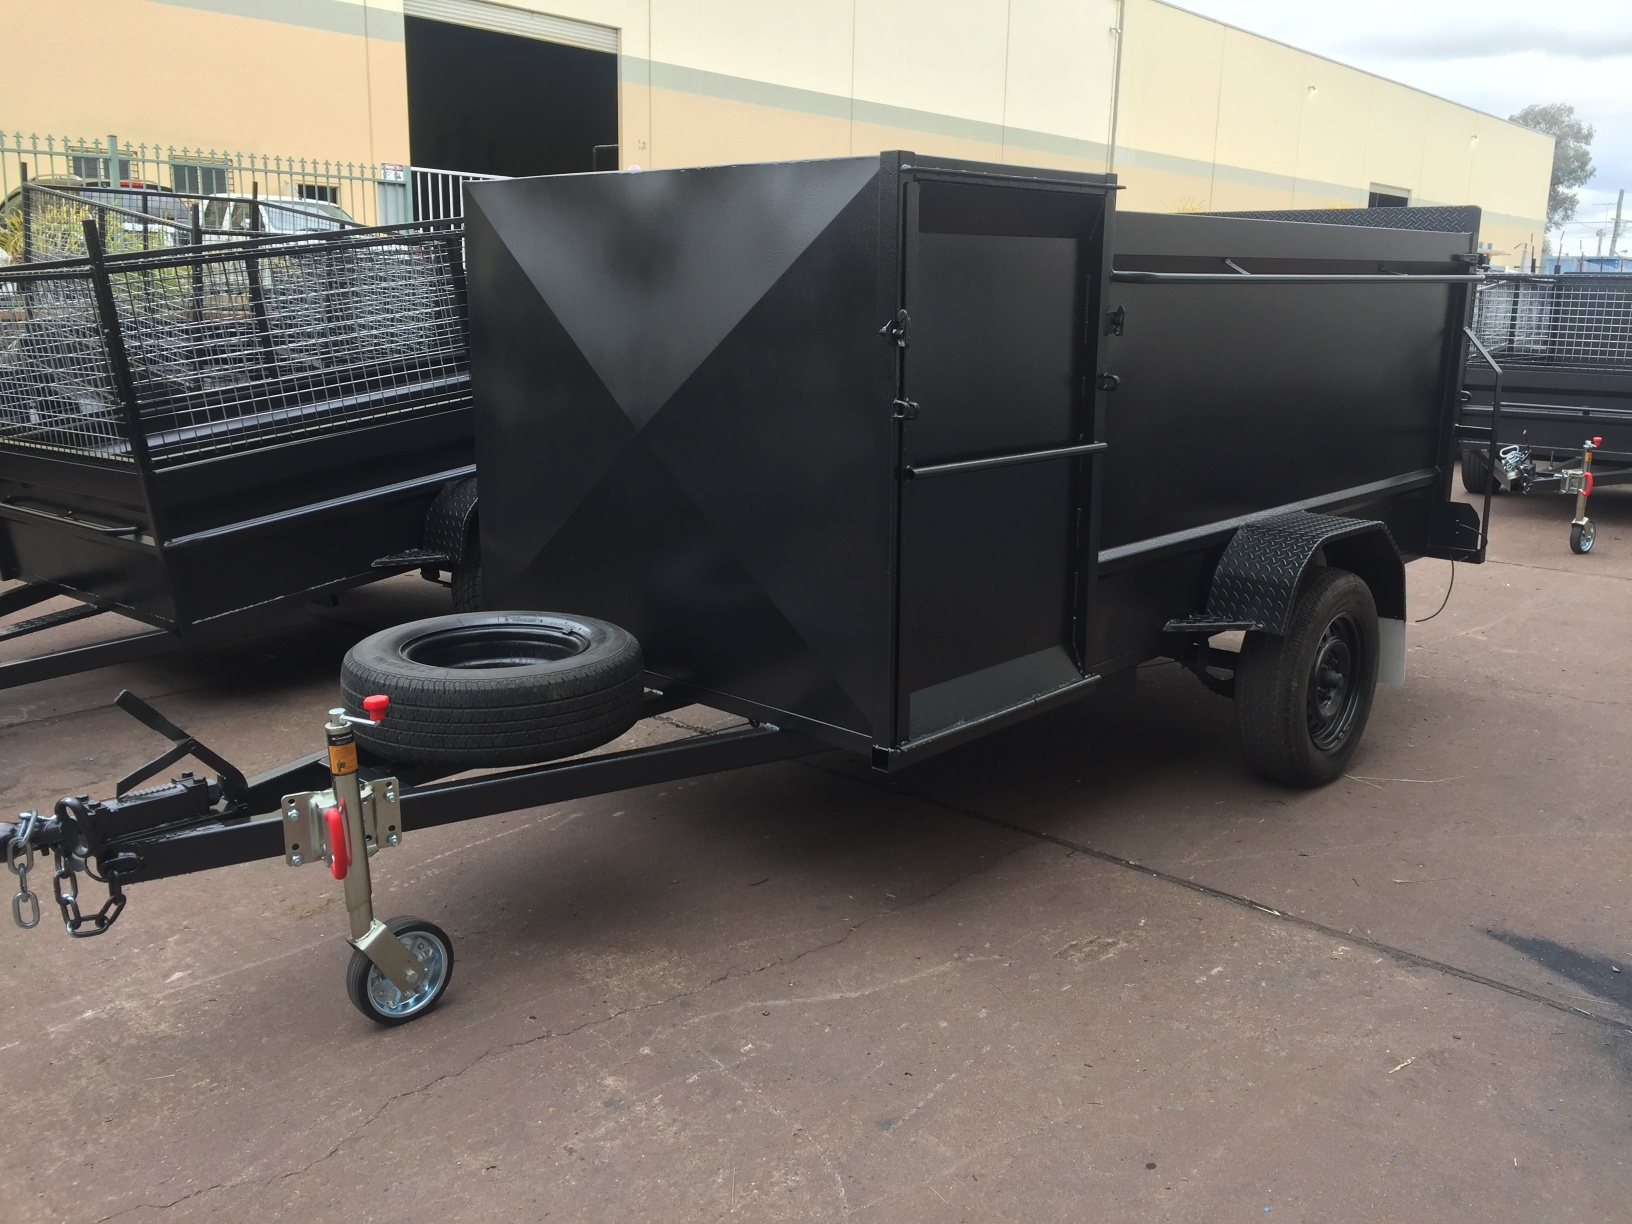 8 5 Lawn Mower Trailer 1400kg Gvm With Front Enclosed Box Mechid Trailers